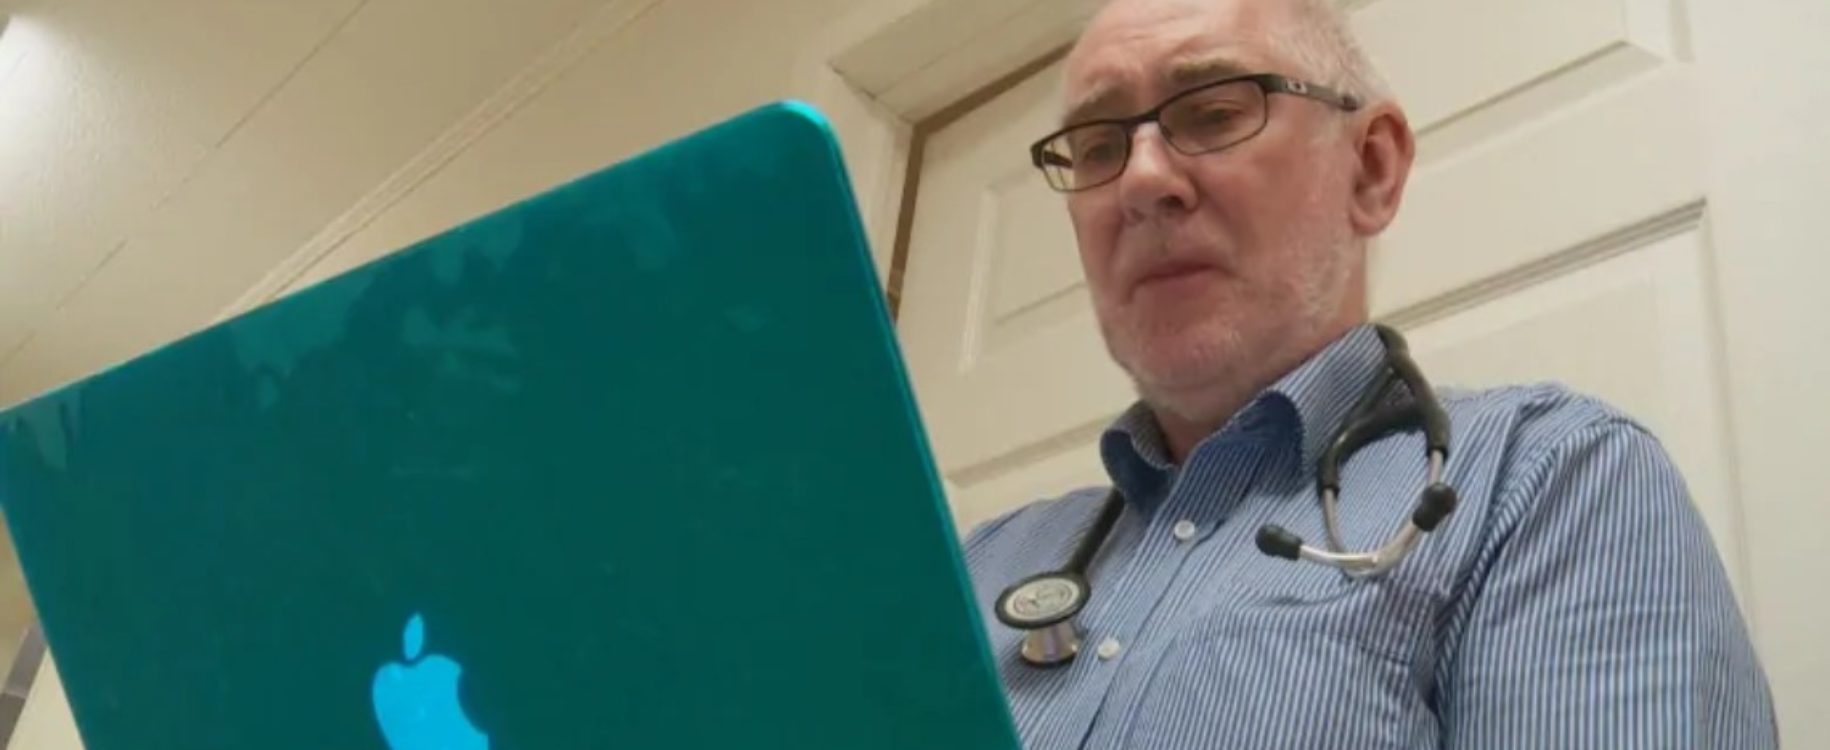 P.E.I. patients can still see their doctor, even though he's moved to Ireland